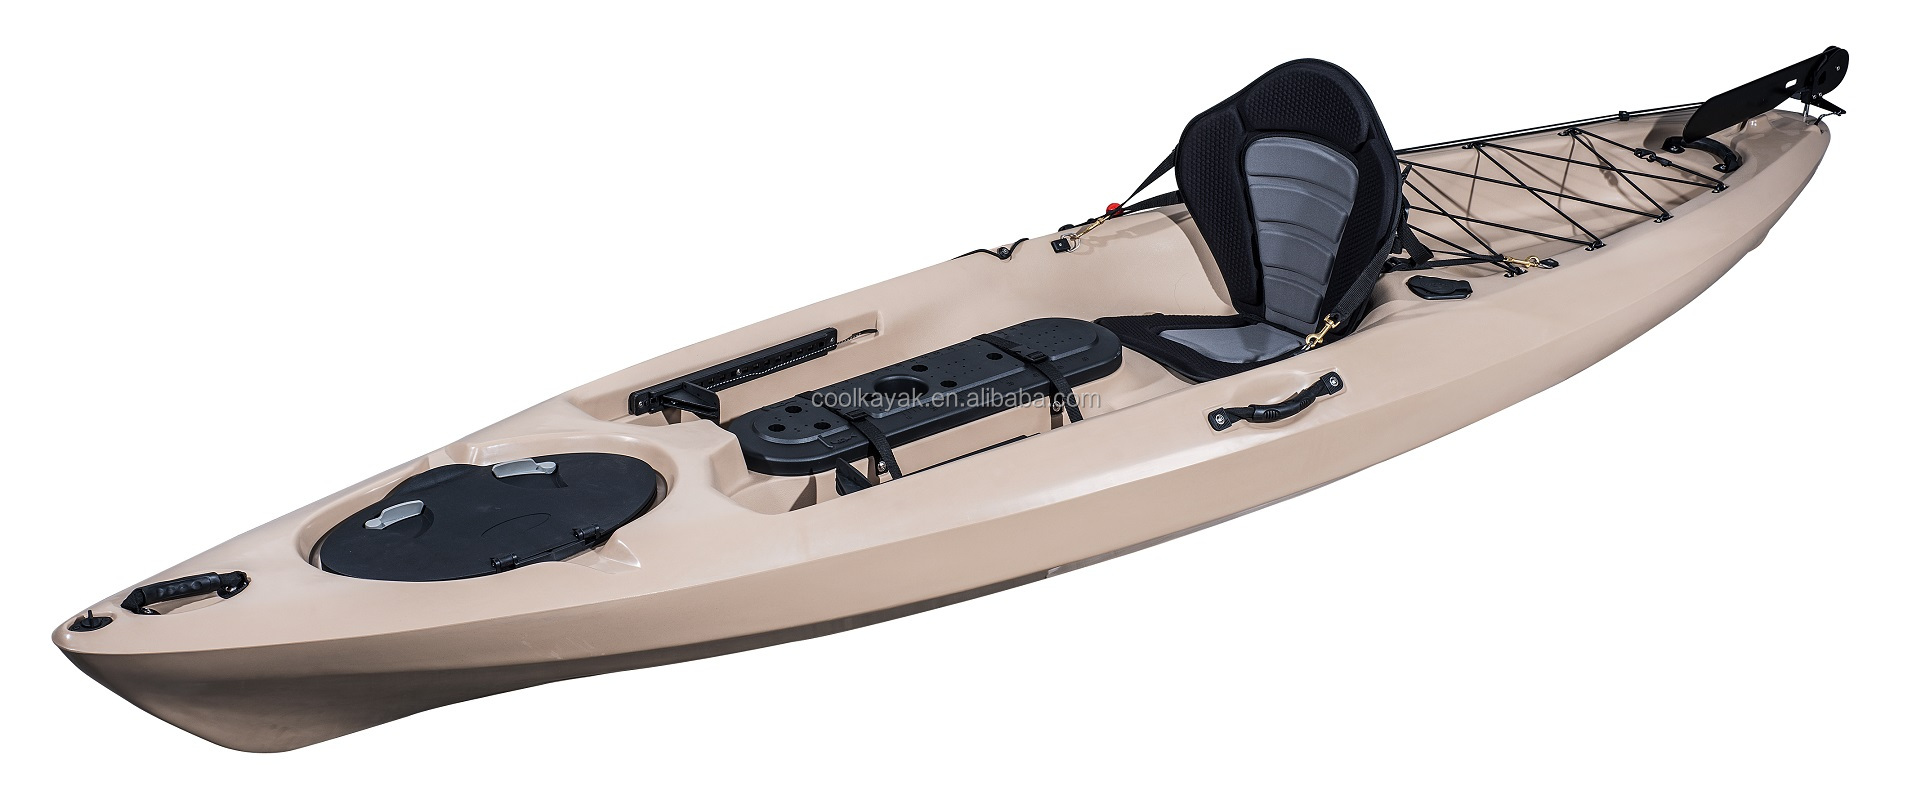 Share diy kayak foot pedals a jke for Fishing kayak with foot pedals